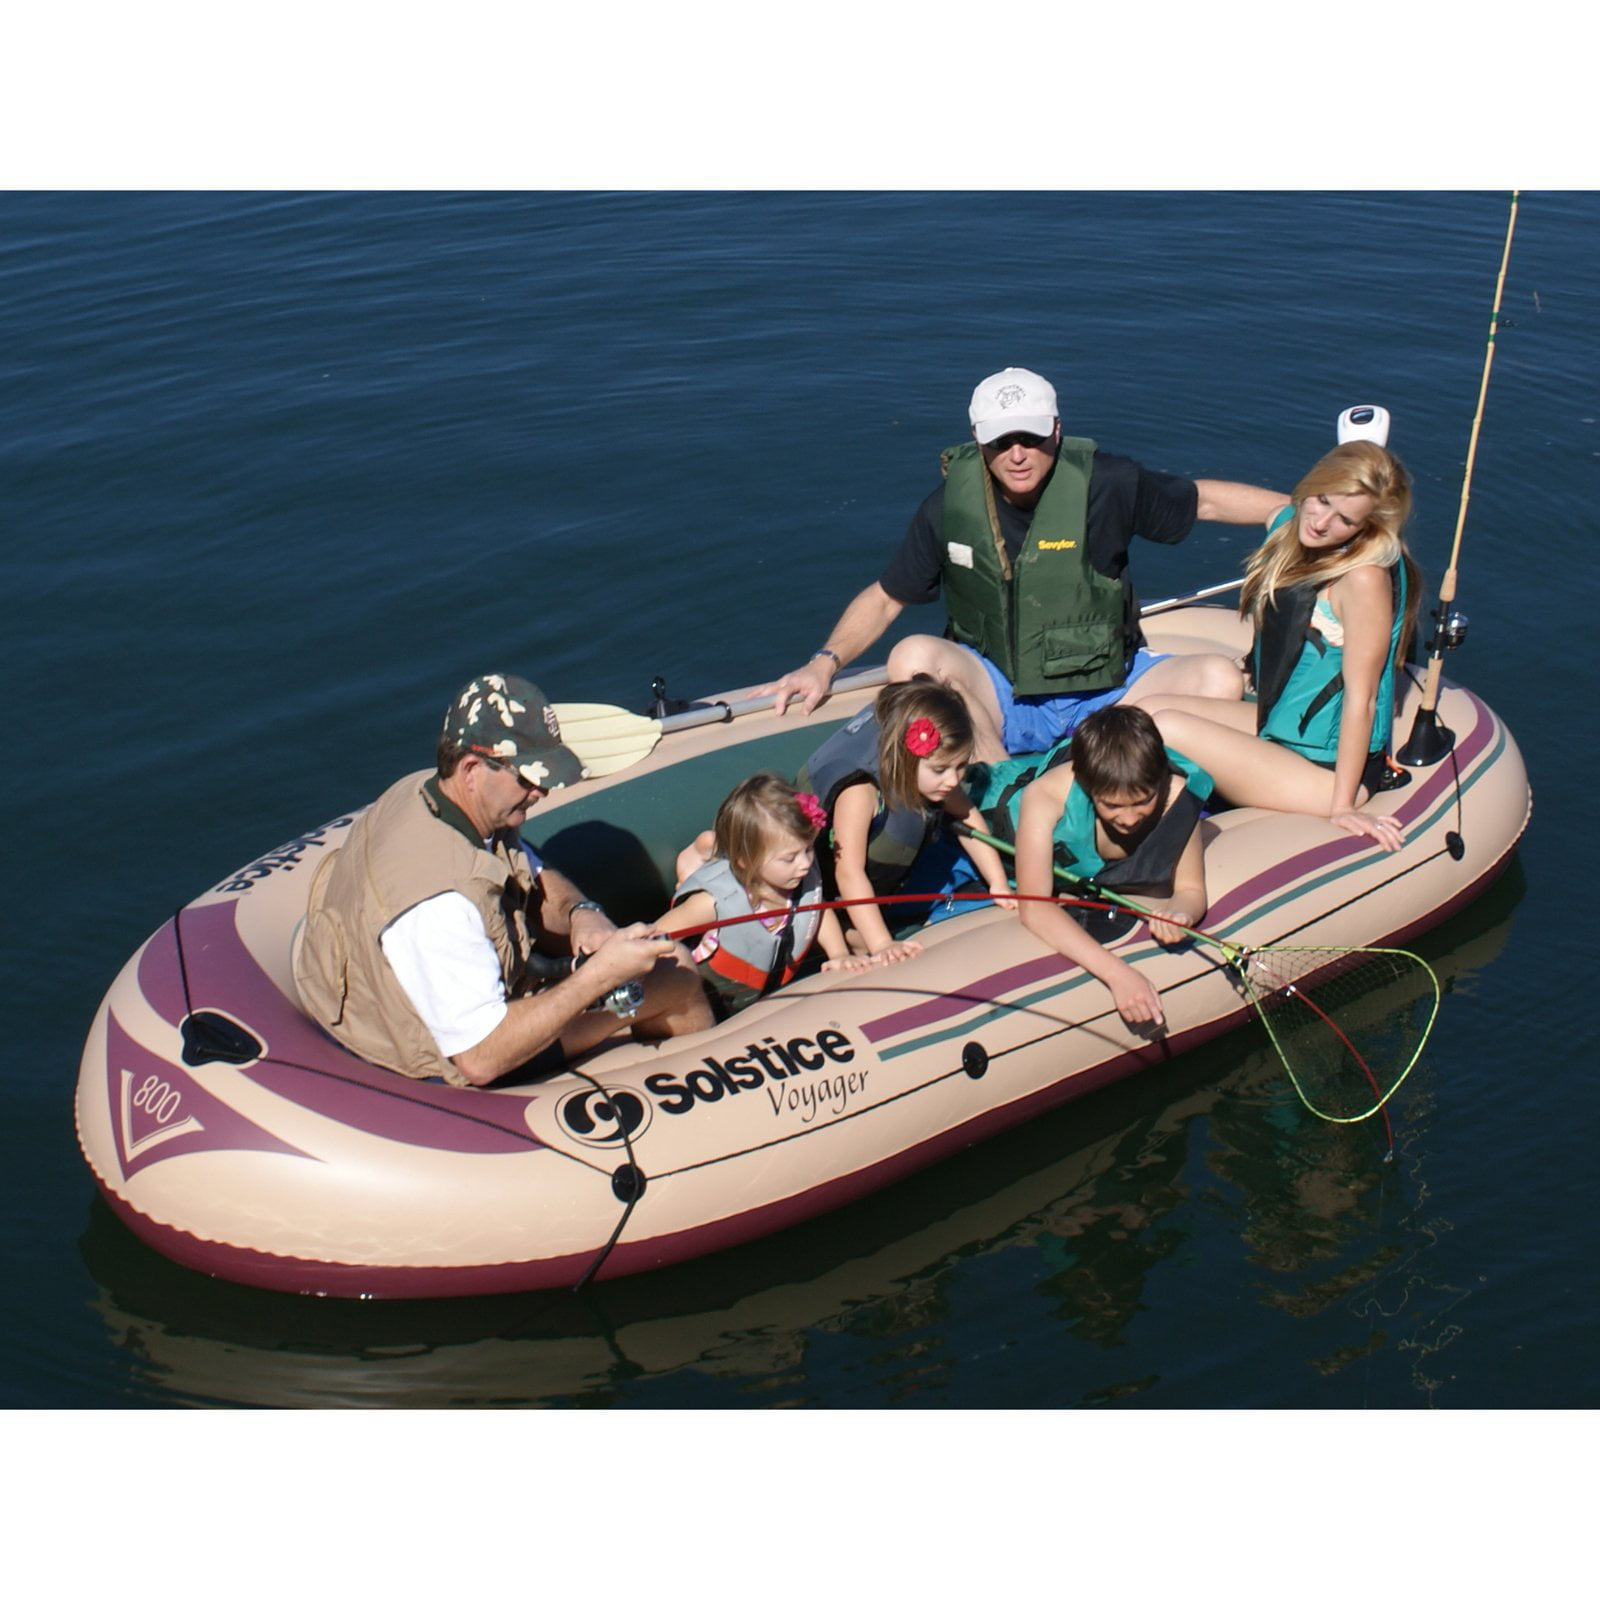 Solstice Voyager Inflatable 6 Person Boat Set by Solstice